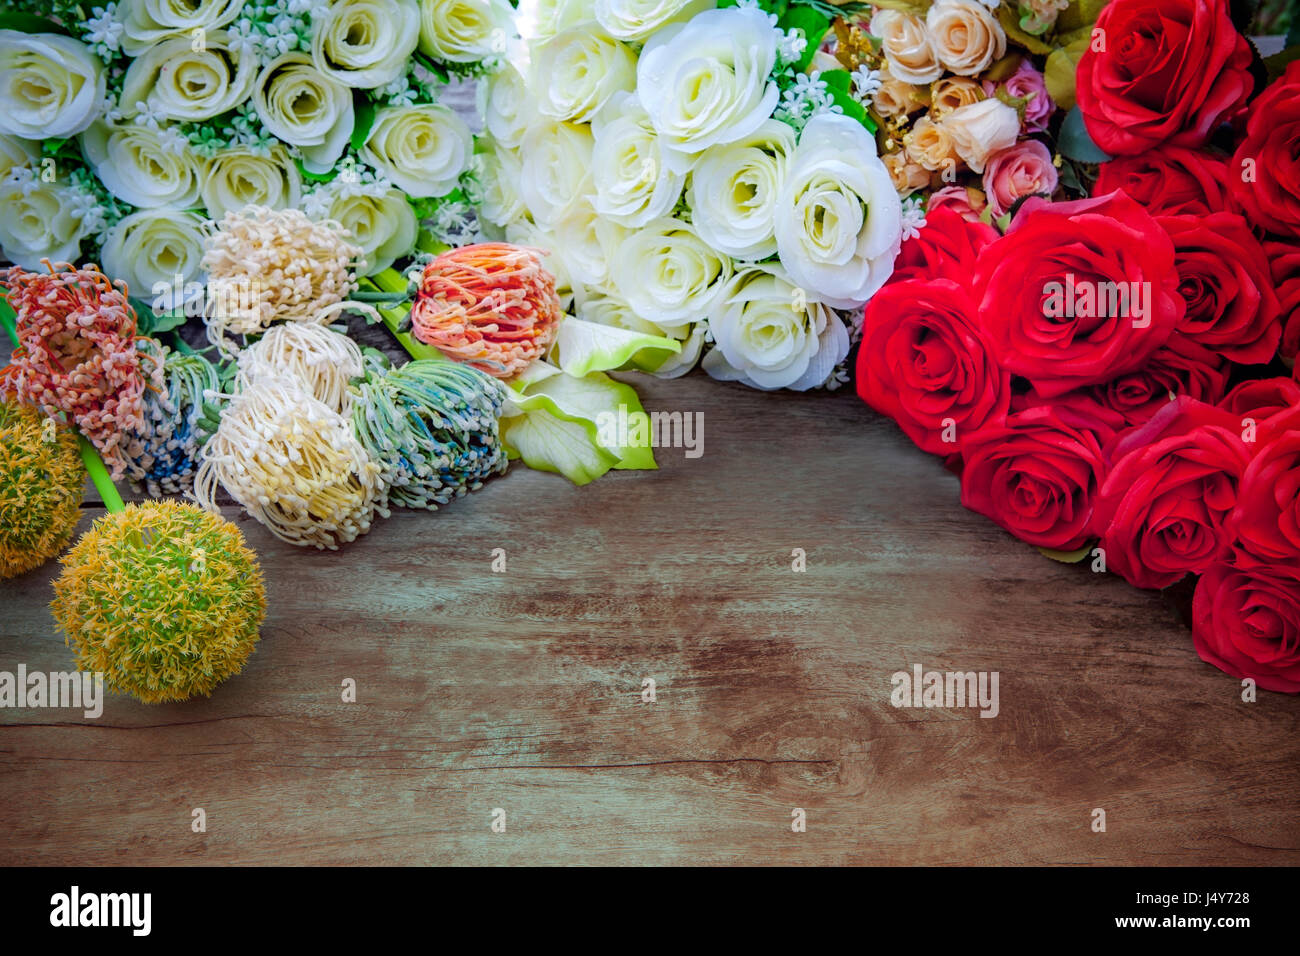 White red roses and flowers bouquet decor on top of wood table with white red roses and flowers bouquet decor on top of wood table with free space background izmirmasajfo